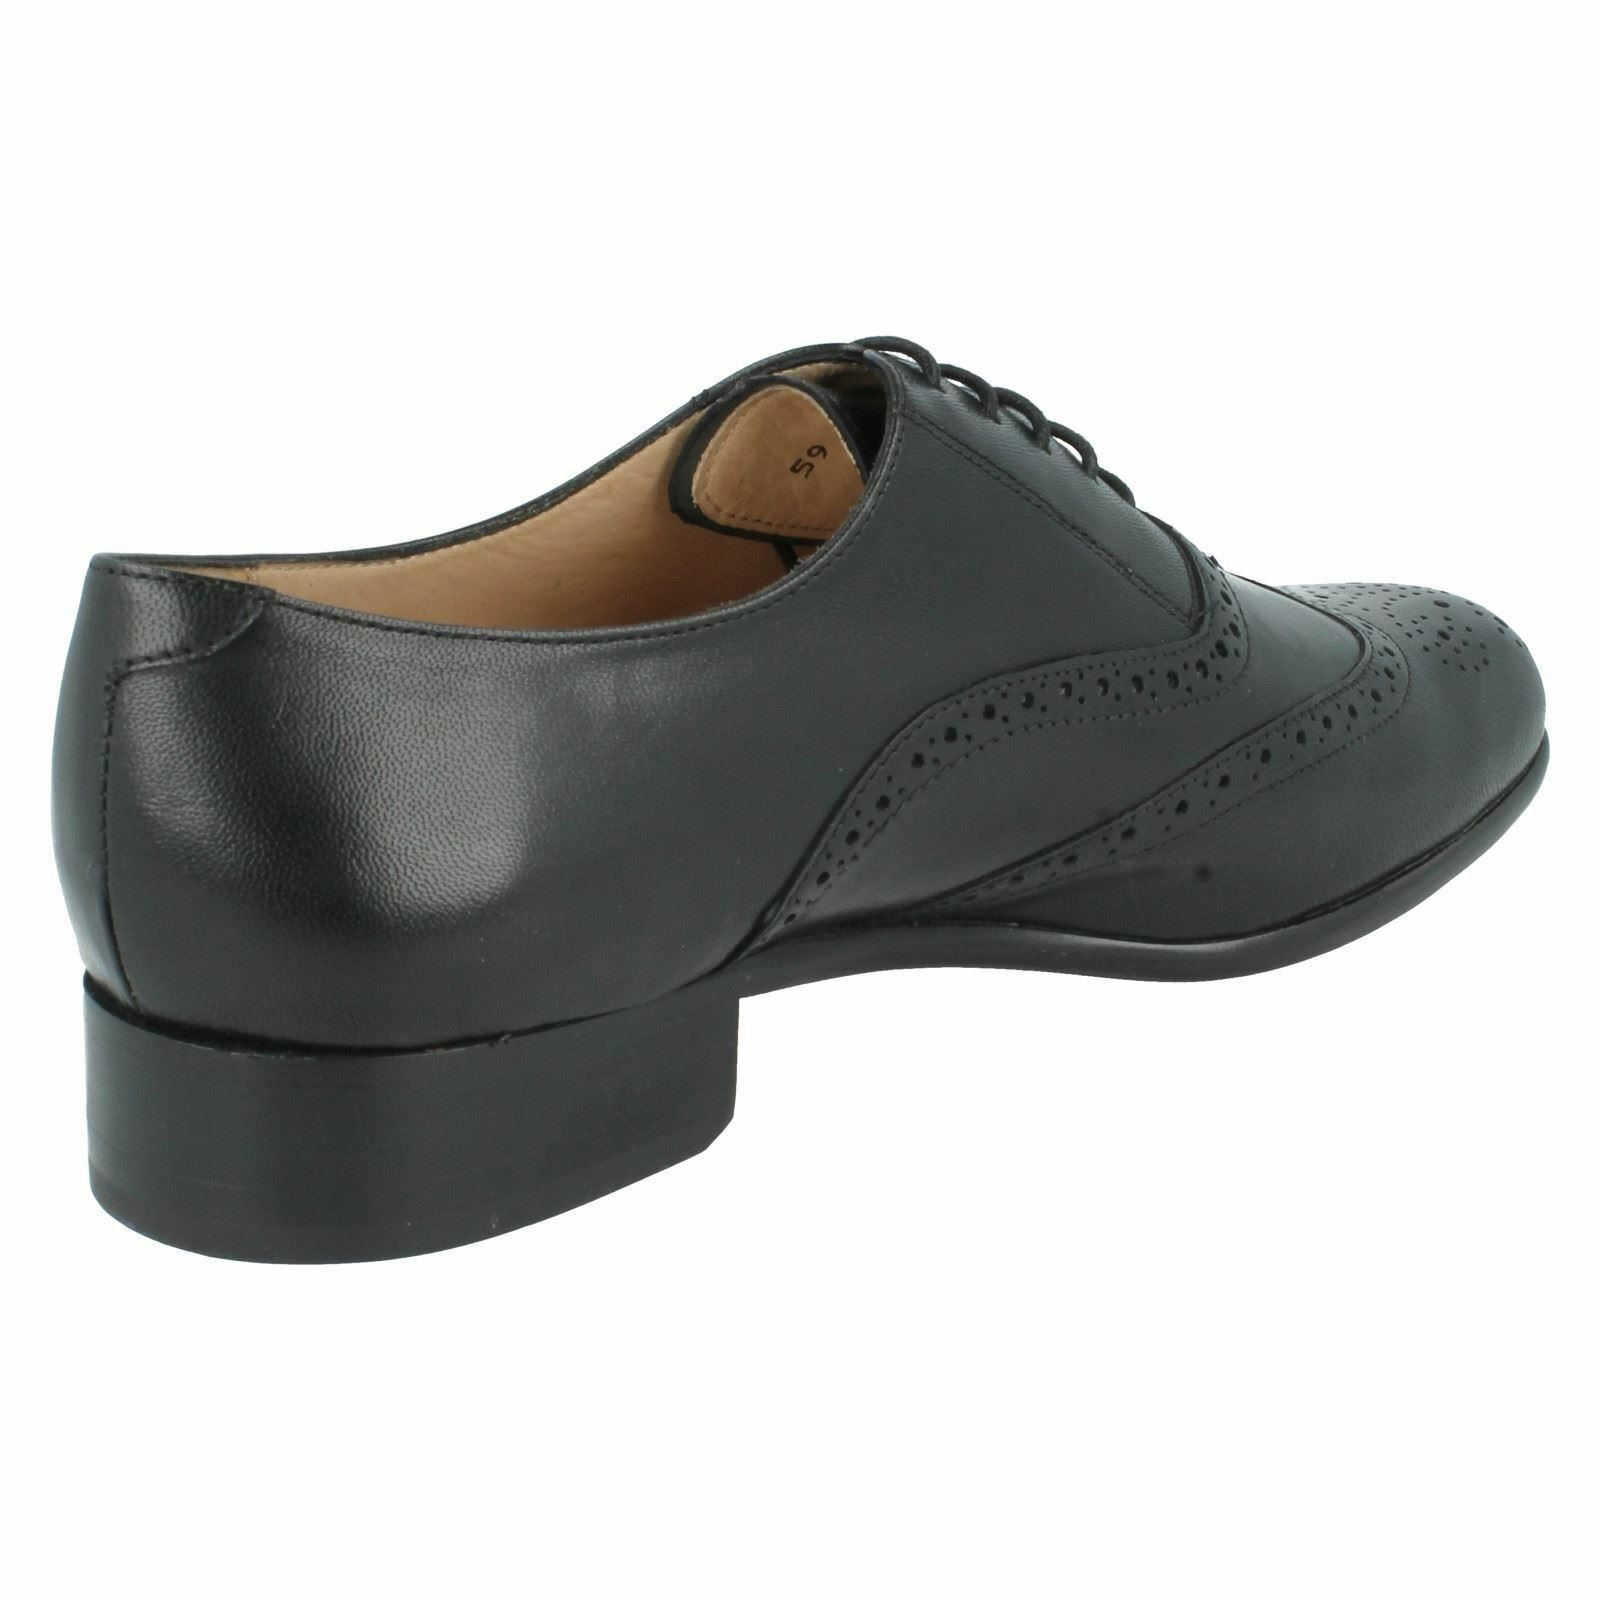 Mens Mens Mens Grenson Formal Brogues Euston The Style 35203 577d35